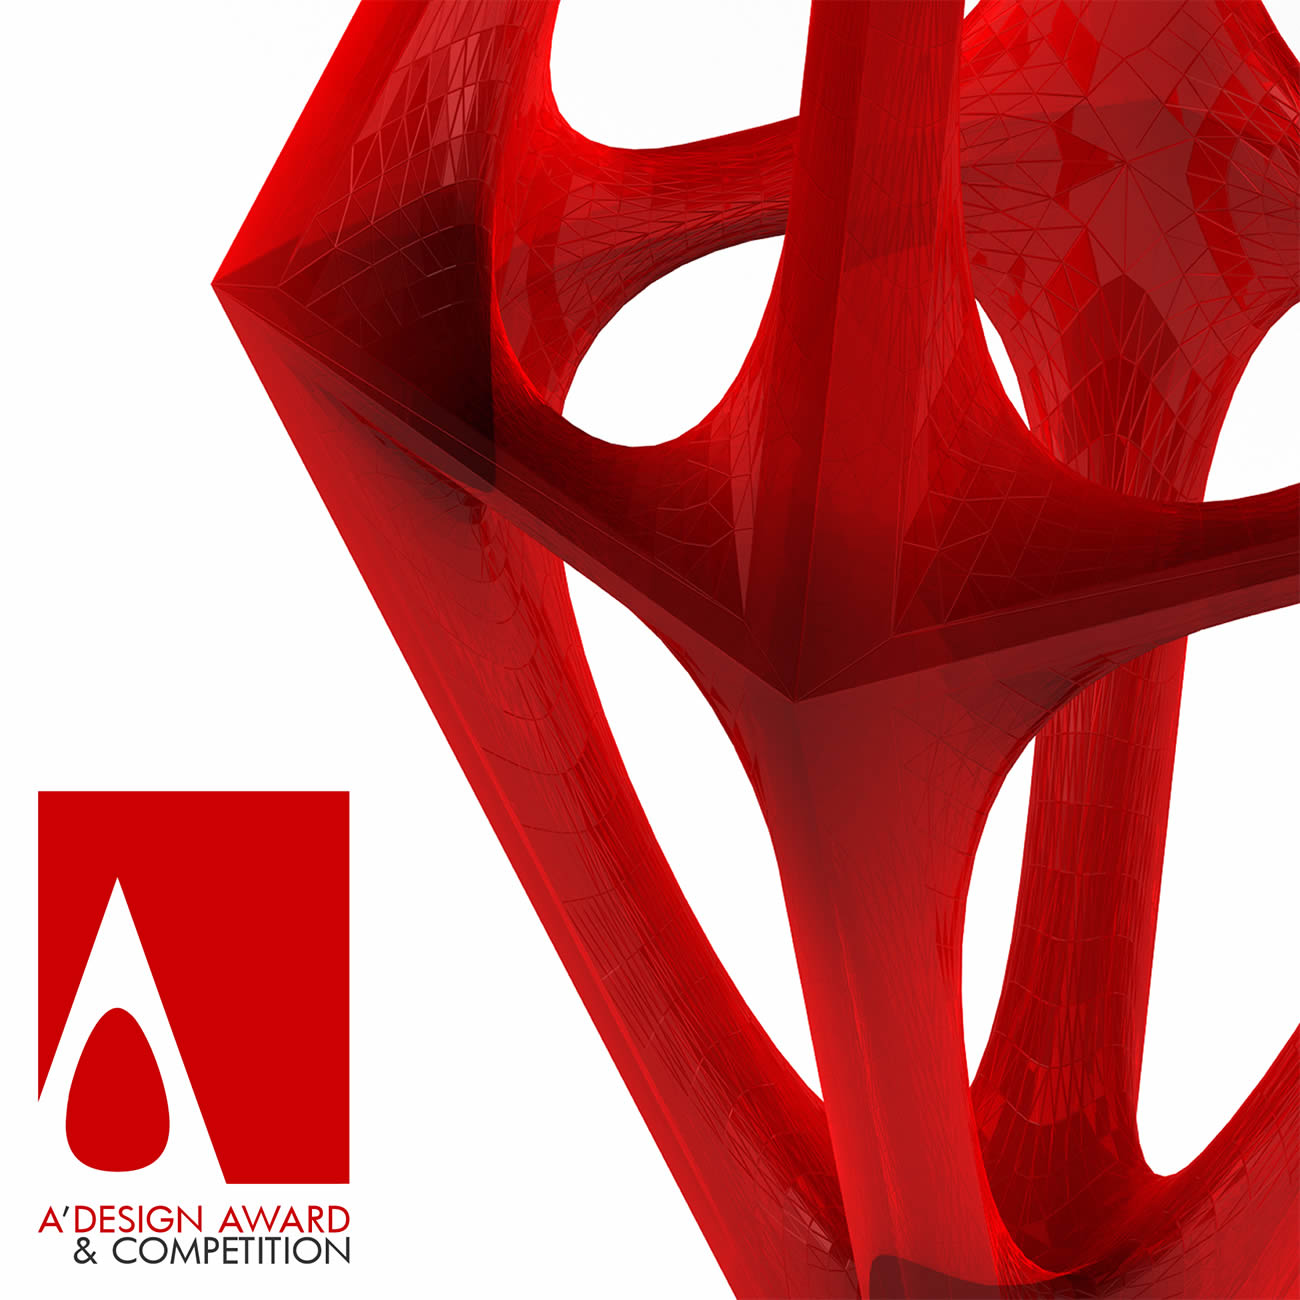 adesignawards logo, trophy